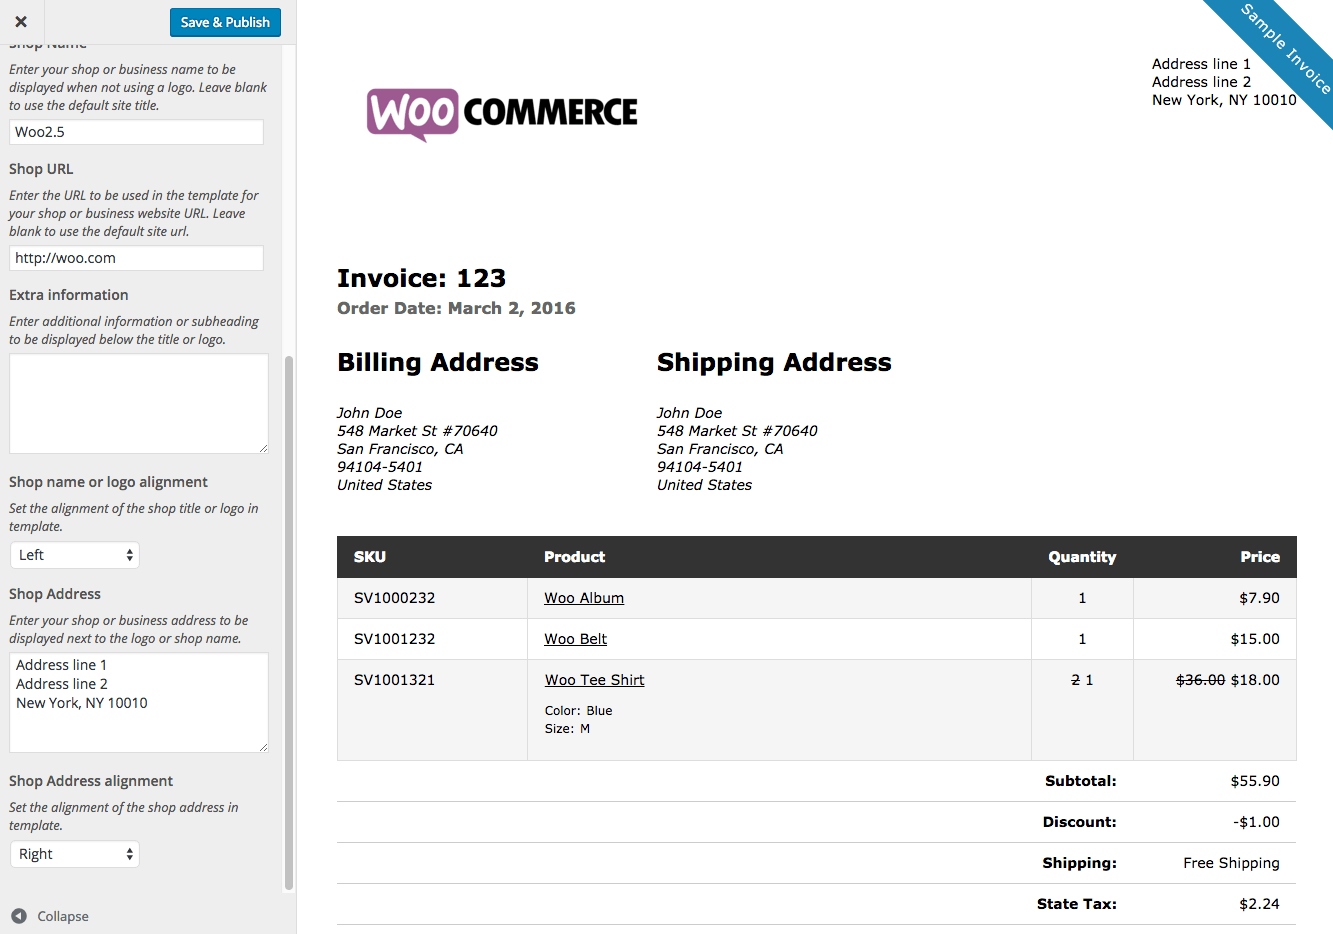 Totallocalus  Winsome Woocommerce Print Invoices Amp Packing Lists  Woocommerce Docs With Outstanding Woocommerce Print Invoices  Packing Lists Customizer With Agreeable Download Free Receipt Template Also Old Navy Returns Without Receipt In Addition Renters Receipt And This Is To Acknowledge Receipt Of As Well As Receipt Scanner Ios Additionally De Gross Receipts Tax From Docswoocommercecom With Totallocalus  Outstanding Woocommerce Print Invoices Amp Packing Lists  Woocommerce Docs With Agreeable Woocommerce Print Invoices  Packing Lists Customizer And Winsome Download Free Receipt Template Also Old Navy Returns Without Receipt In Addition Renters Receipt From Docswoocommercecom